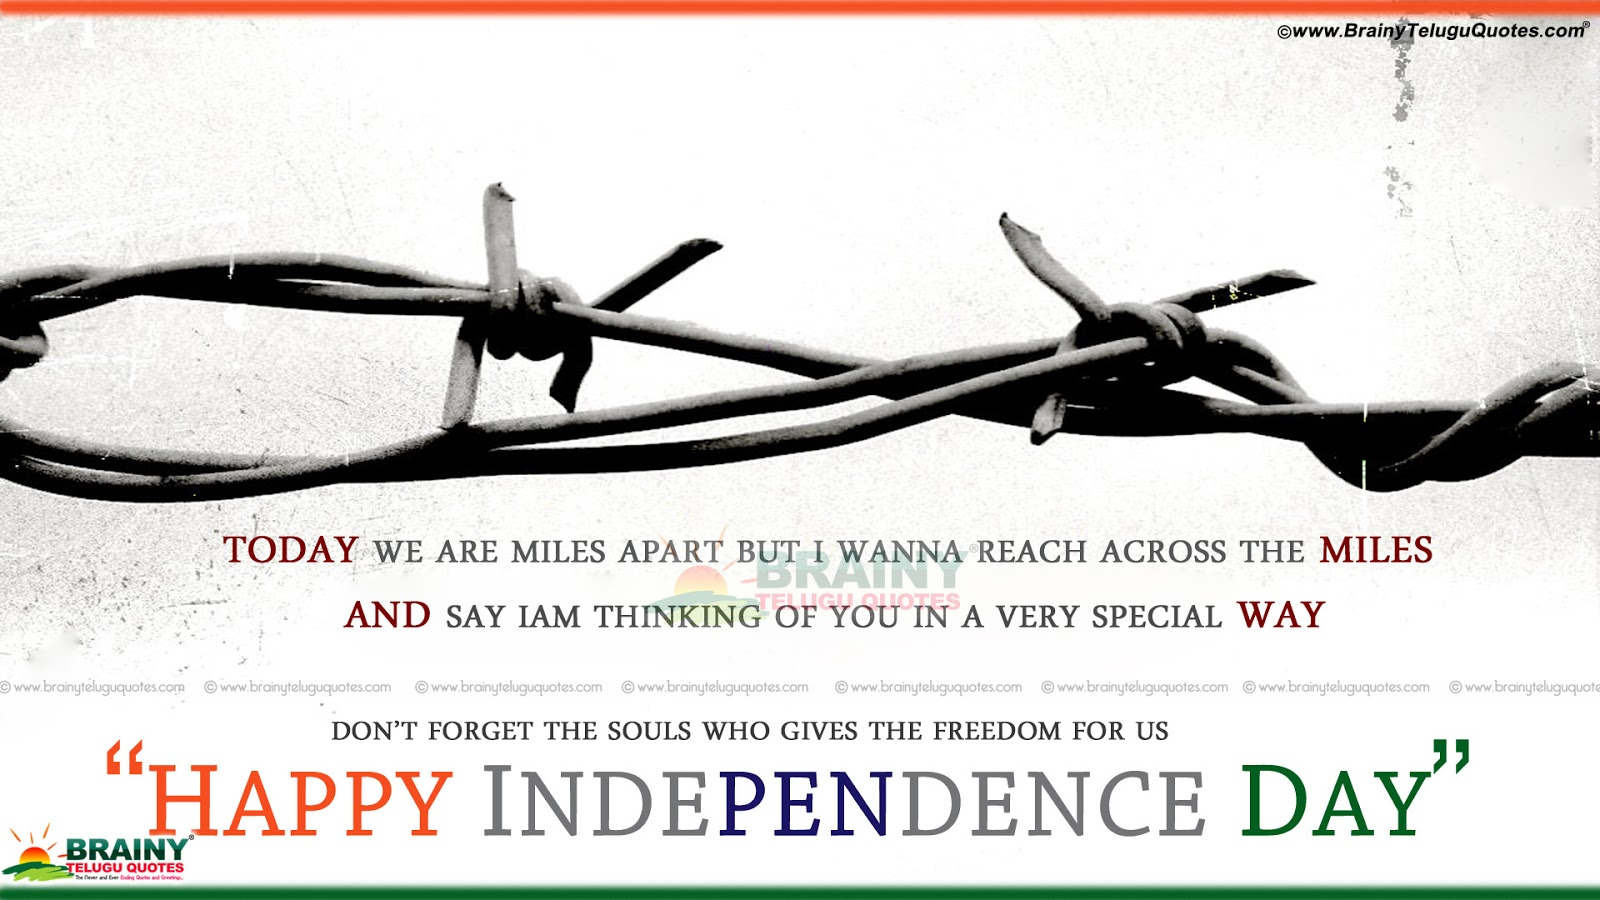 happy independenceday english 2016 greetings quotes here is happy independenceday english 2016 greetings quotes english 70th independence day greetings and quotations